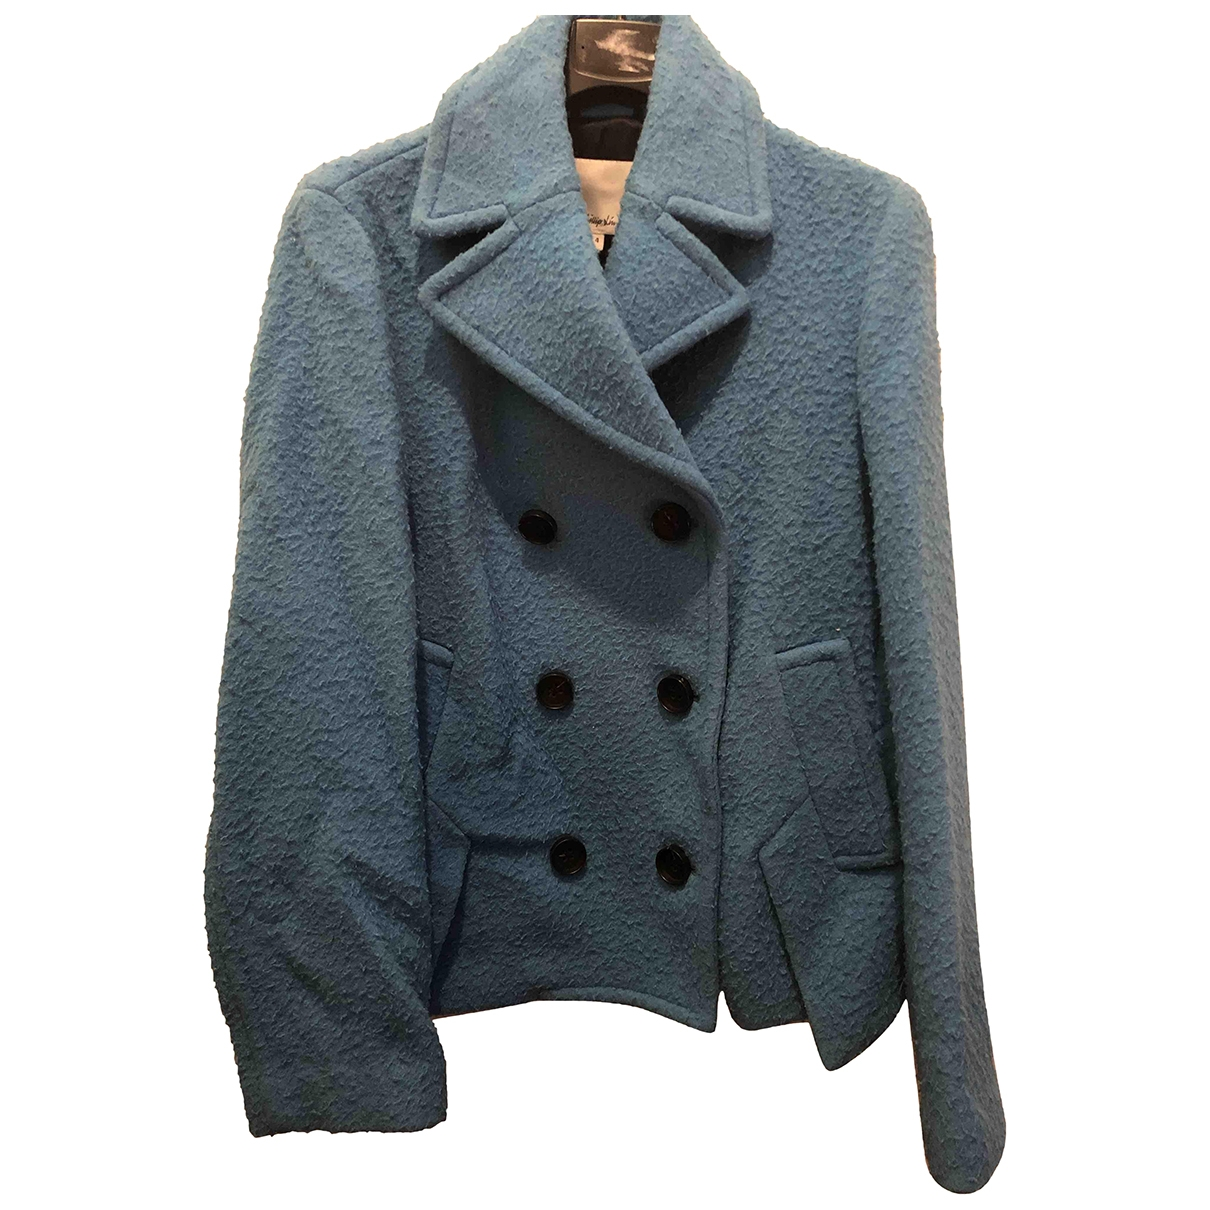 3.1 Phillip Lim \N Turquoise Wool coat for Women 4 US